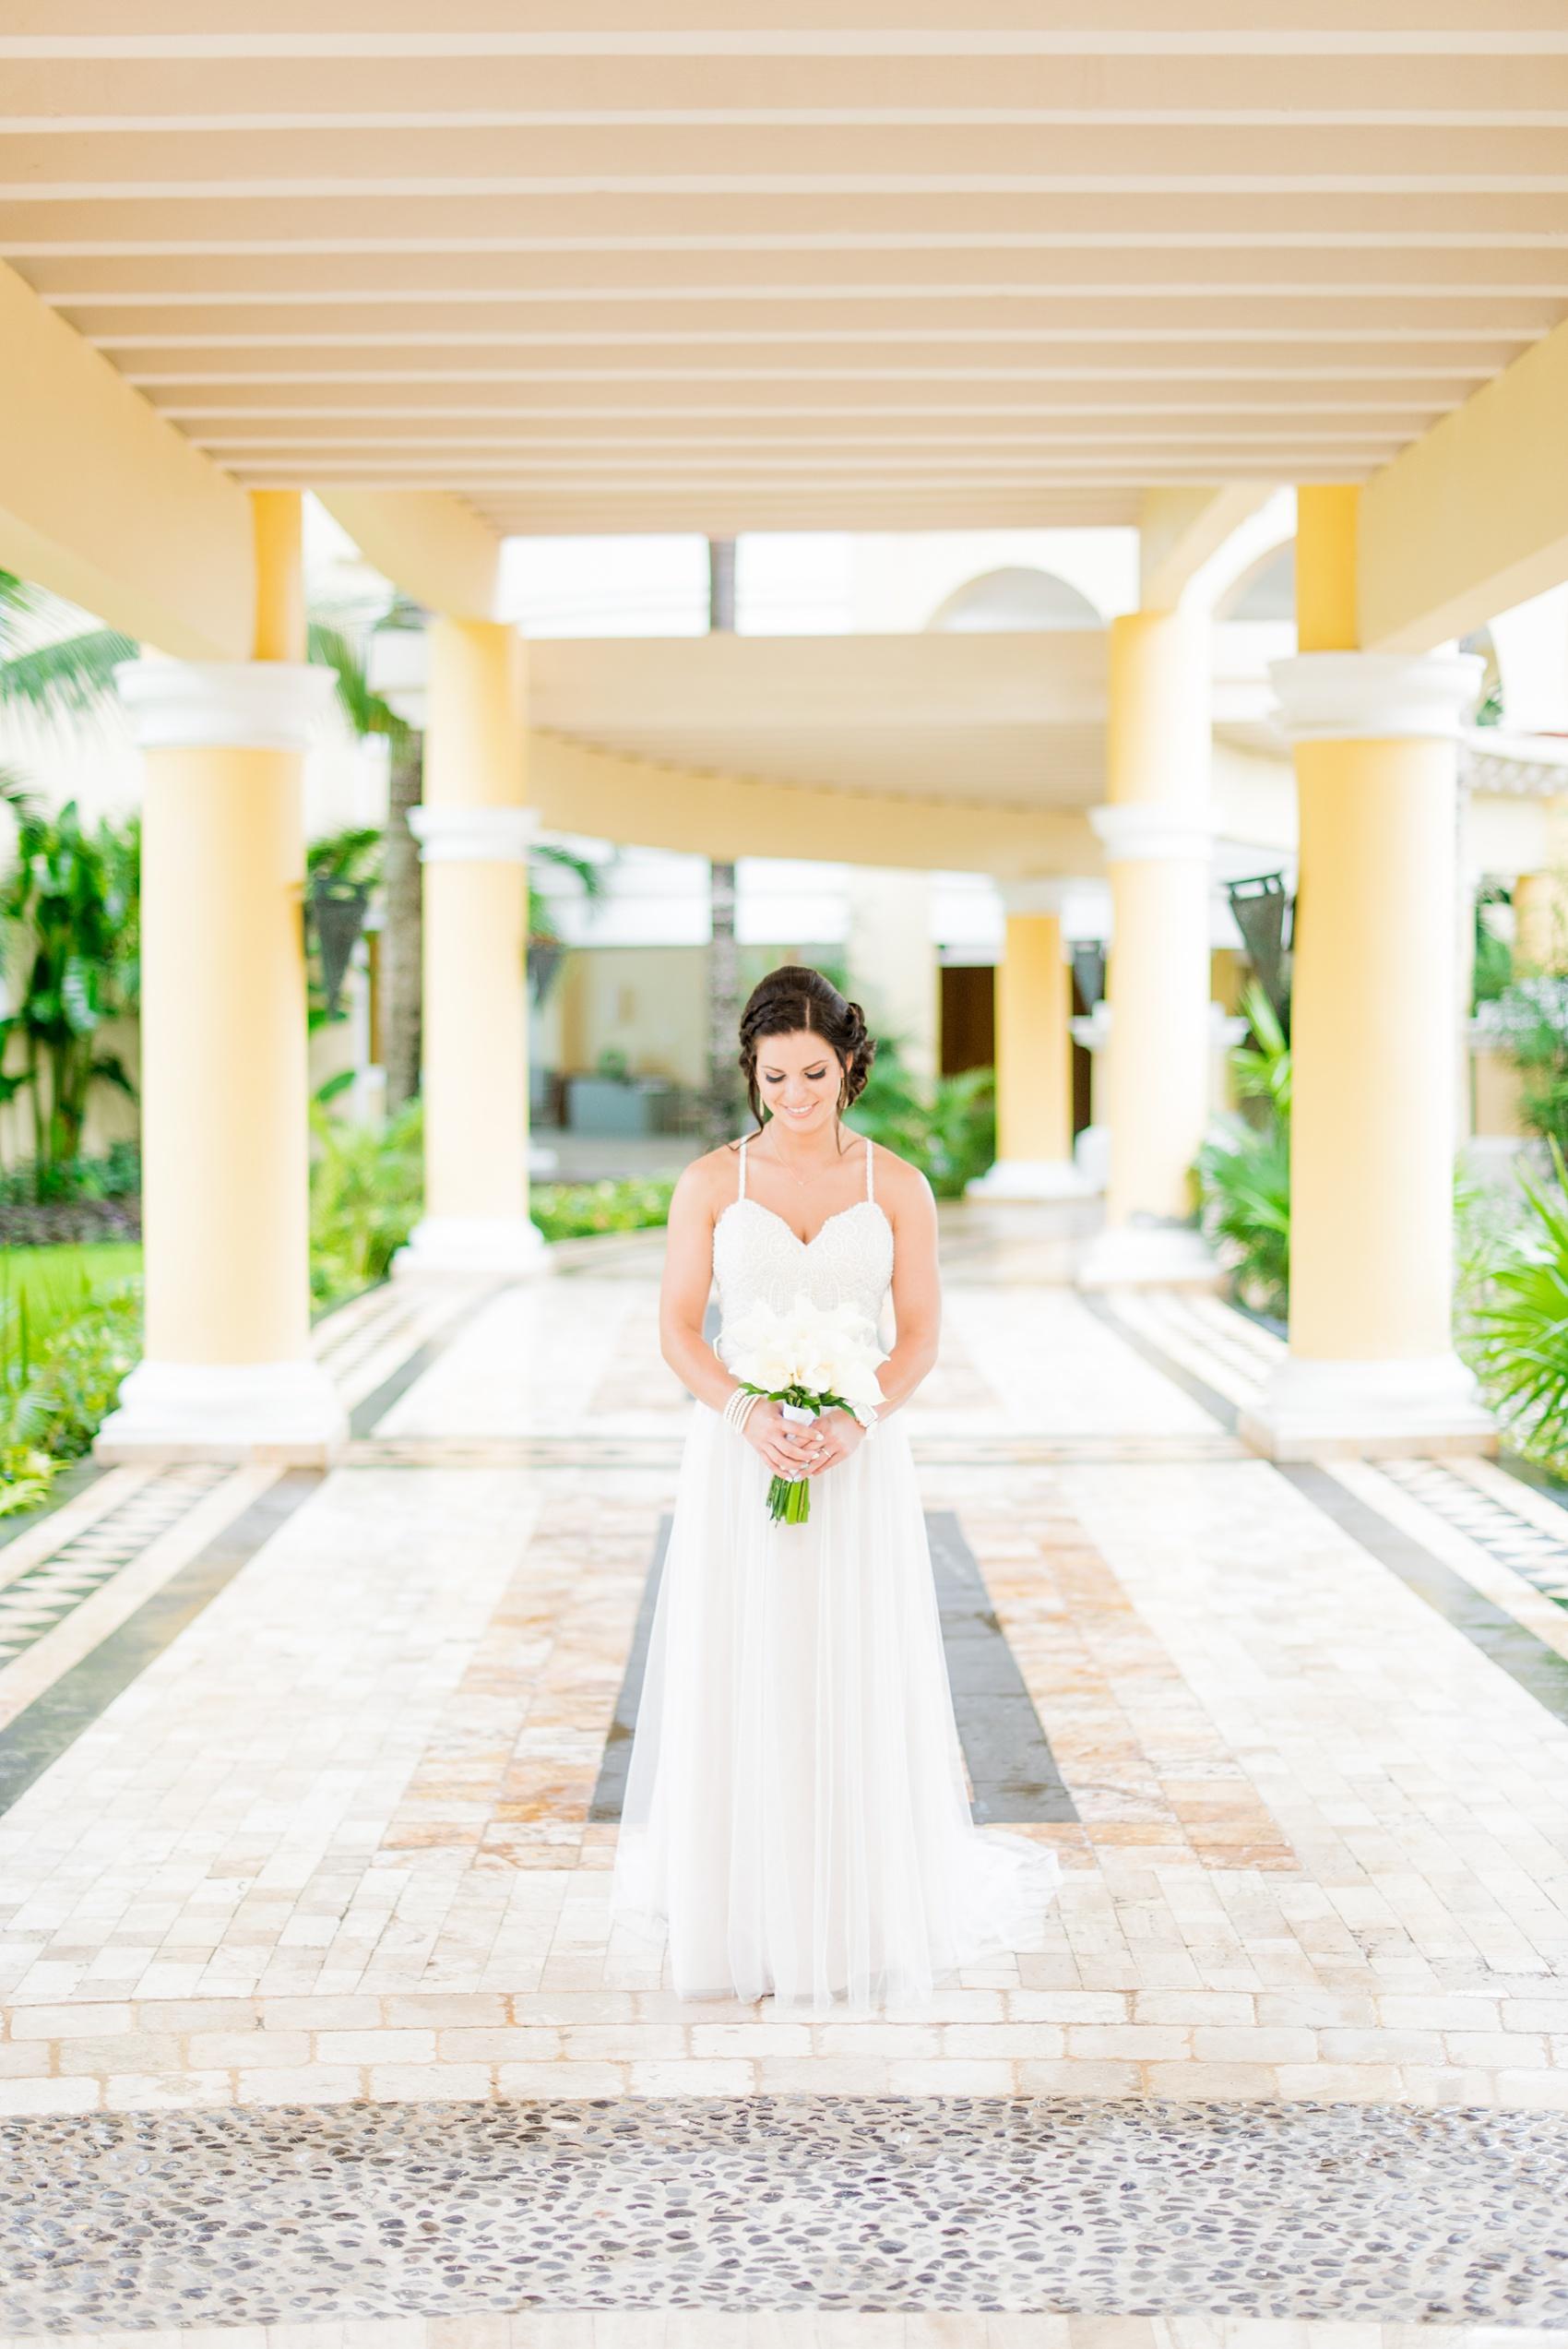 Mikkel Paige Photography photos from a wedding at Grand Paraiso, Mexico, Playa del Carmen Iberostar resort. Picture of the bride in her beach dress with tulle skirt.